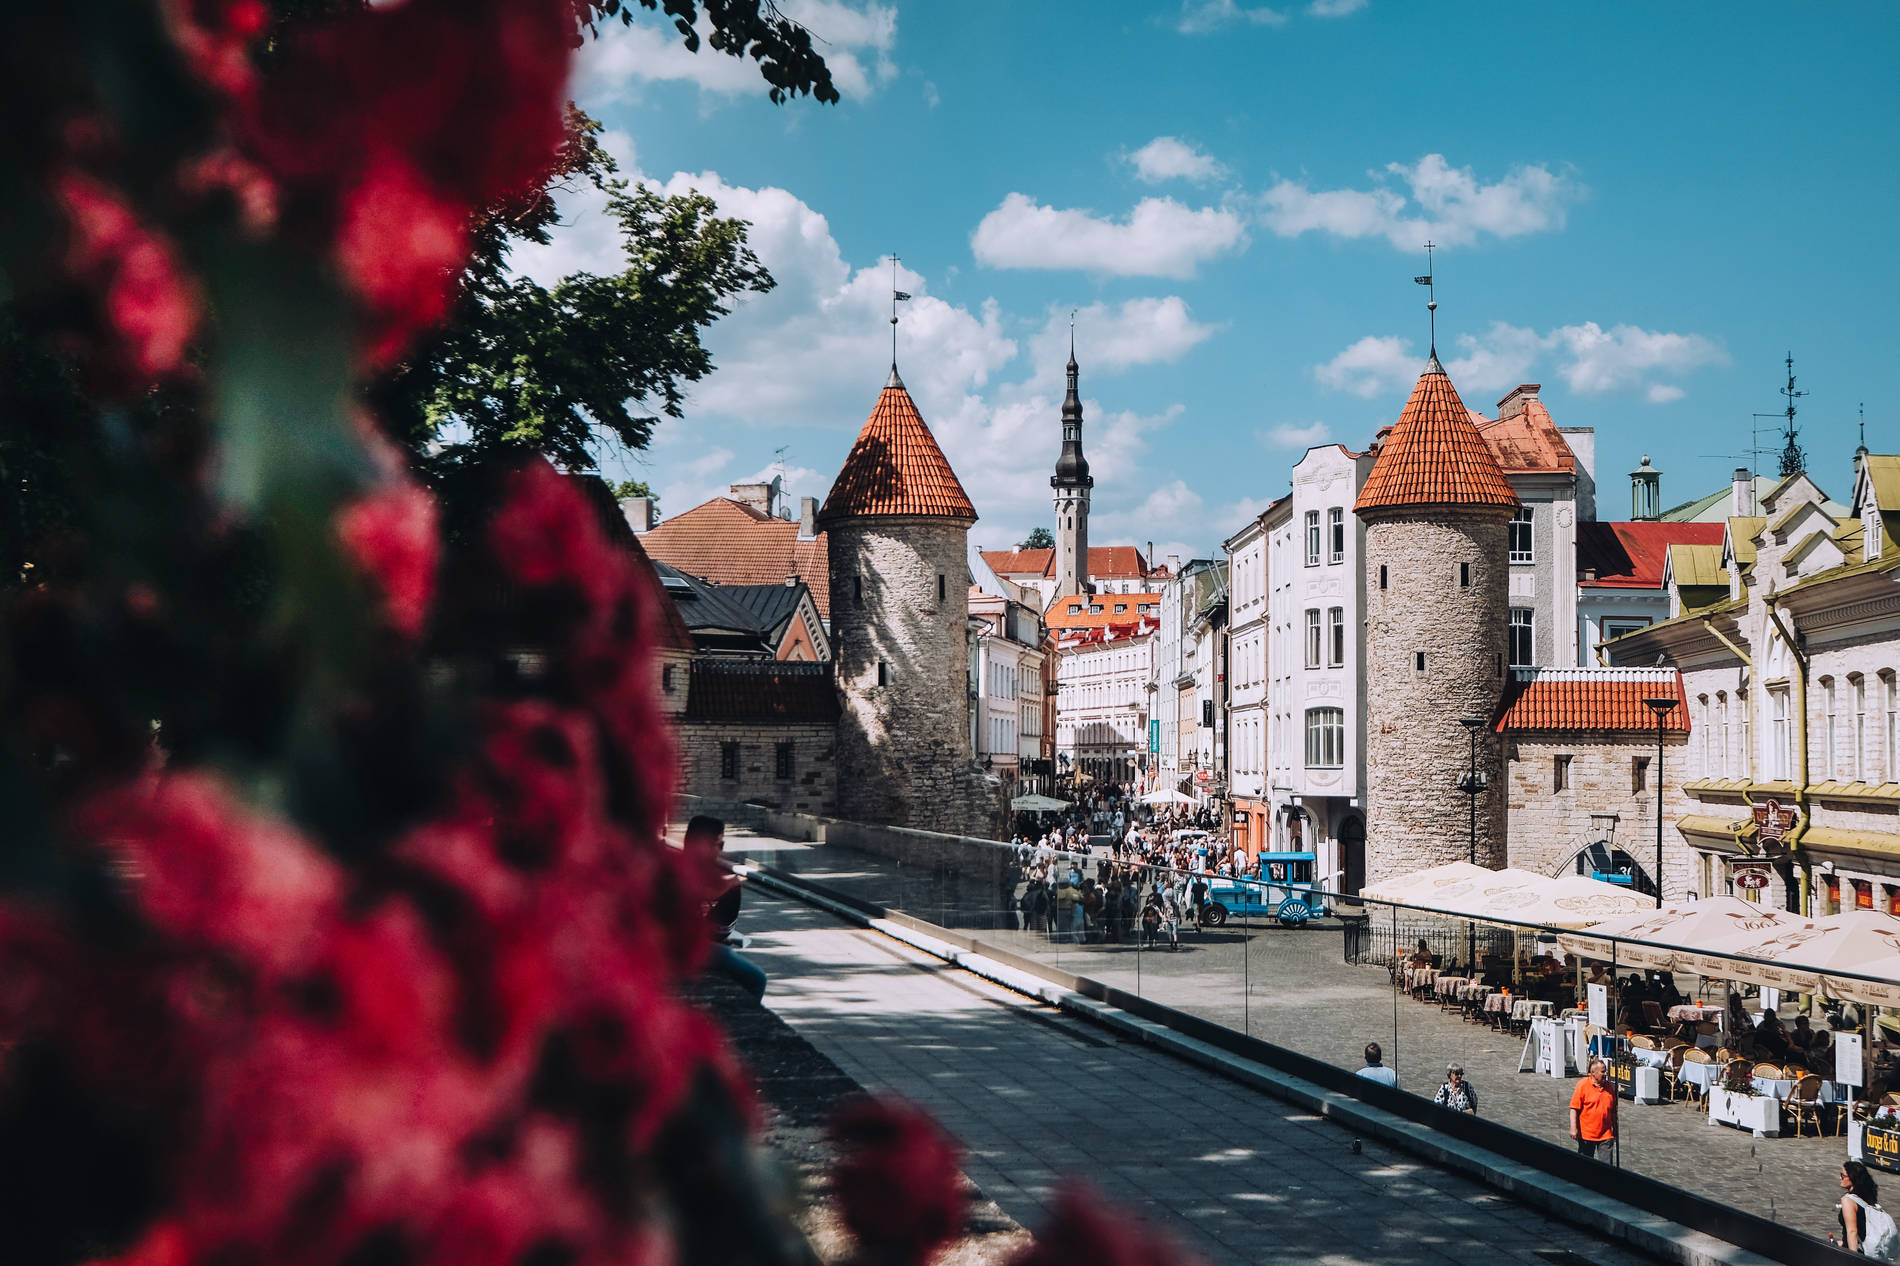 Summery Tallinn with the view of the Viru gates in the Old Town. Photo by: Kadi-Liis Koppel